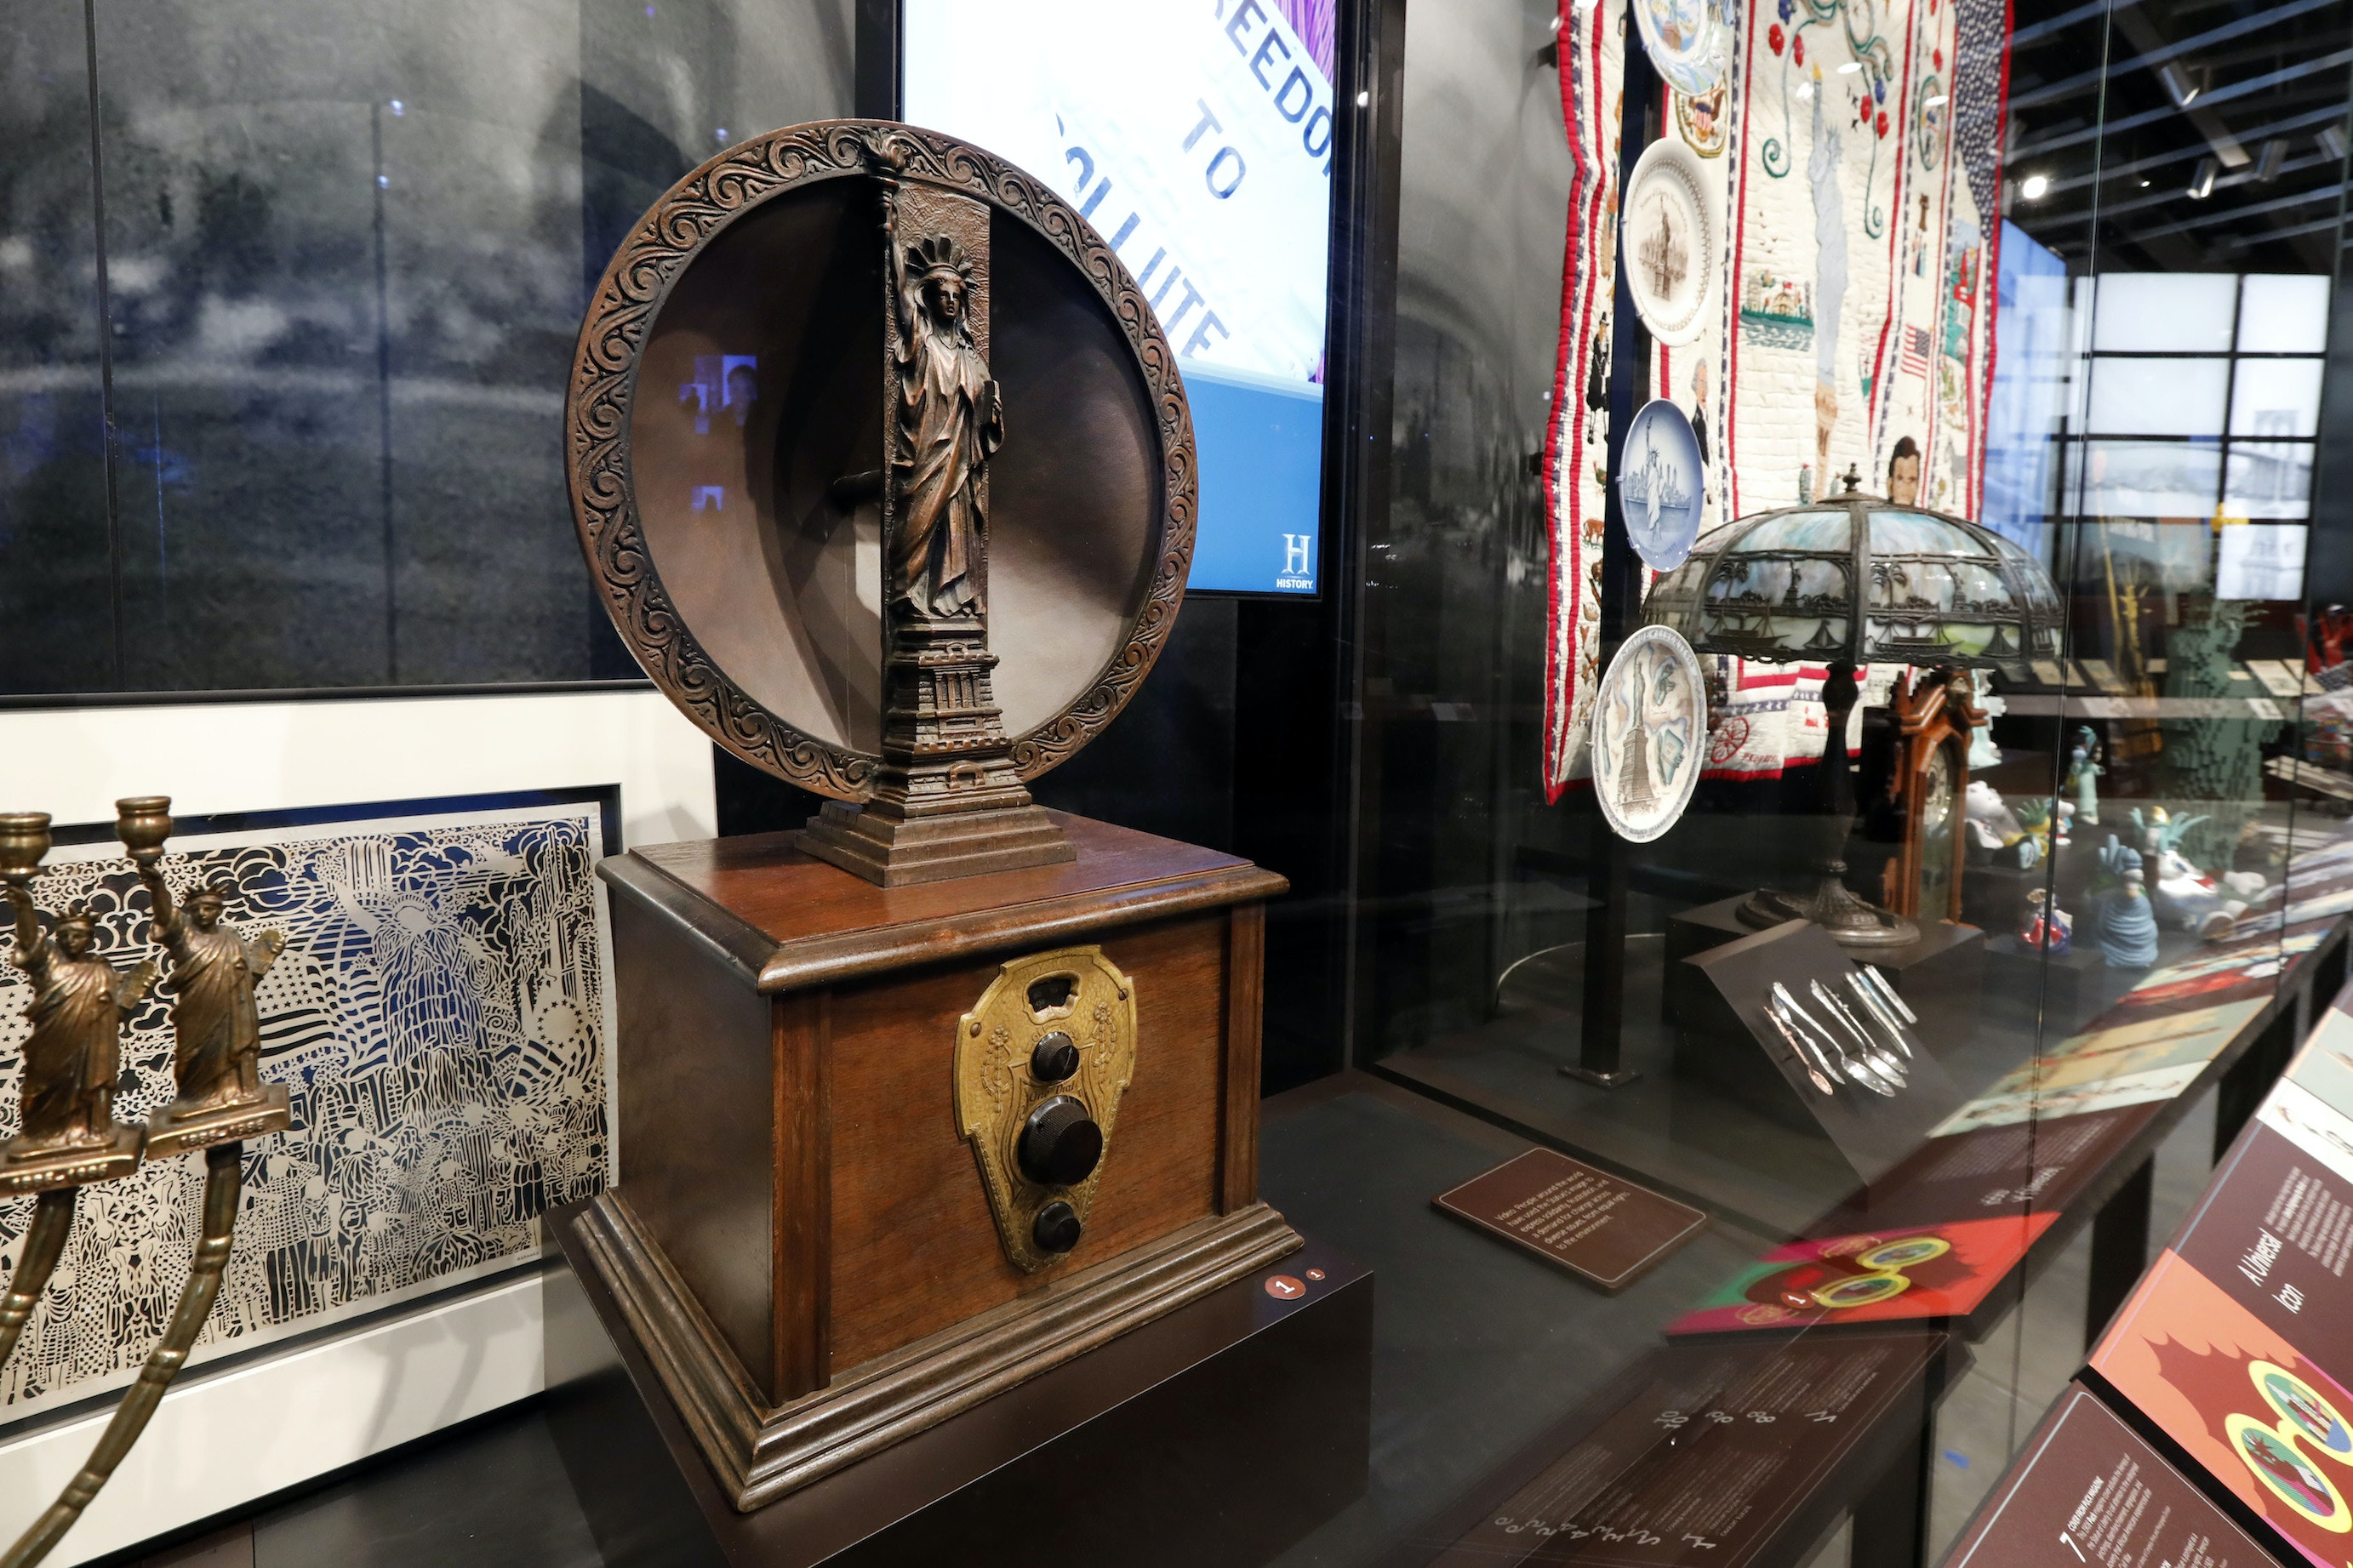 A 1920s Mohawk one-dial radio and speaker is among the artifacts displayed.